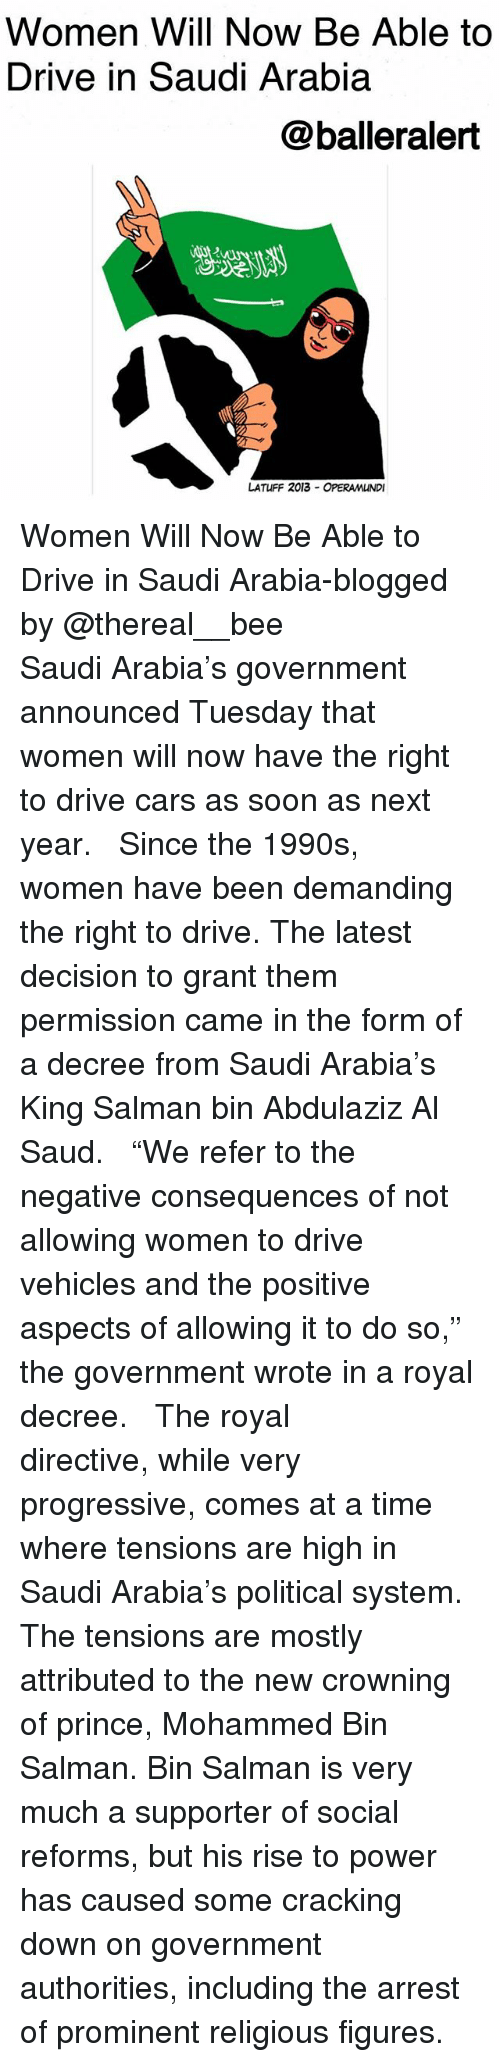 """salman: Women Will Now Be Able to  Drive in Saudi Arabia  @balleralert  じ2  LATUFF 2013 OPERAMUNDI Women Will Now Be Able to Drive in Saudi Arabia-blogged by @thereal__bee ⠀⠀⠀⠀⠀⠀⠀⠀⠀ ⠀⠀ Saudi Arabia's government announced Tuesday that women will now have the right to drive cars as soon as next year. ⠀⠀⠀⠀⠀⠀⠀⠀⠀ ⠀⠀ Since the 1990s, women have been demanding the right to drive. The latest decision to grant them permission came in the form of a decree from Saudi Arabia's King Salman bin Abdulaziz Al Saud. ⠀⠀⠀⠀⠀⠀⠀⠀⠀ ⠀⠀ """"We refer to the negative consequences of not allowing women to drive vehicles and the positive aspects of allowing it to do so,"""" the government wrote in a royal decree. ⠀⠀⠀⠀⠀⠀⠀⠀⠀ ⠀⠀ The royal directive, while very progressive, comes at a time where tensions are high in Saudi Arabia's political system. The tensions are mostly attributed to the new crowning of prince, Mohammed Bin Salman. Bin Salman is very much a supporter of social reforms, but his rise to power has caused some cracking down on government authorities, including the arrest of prominent religious figures."""